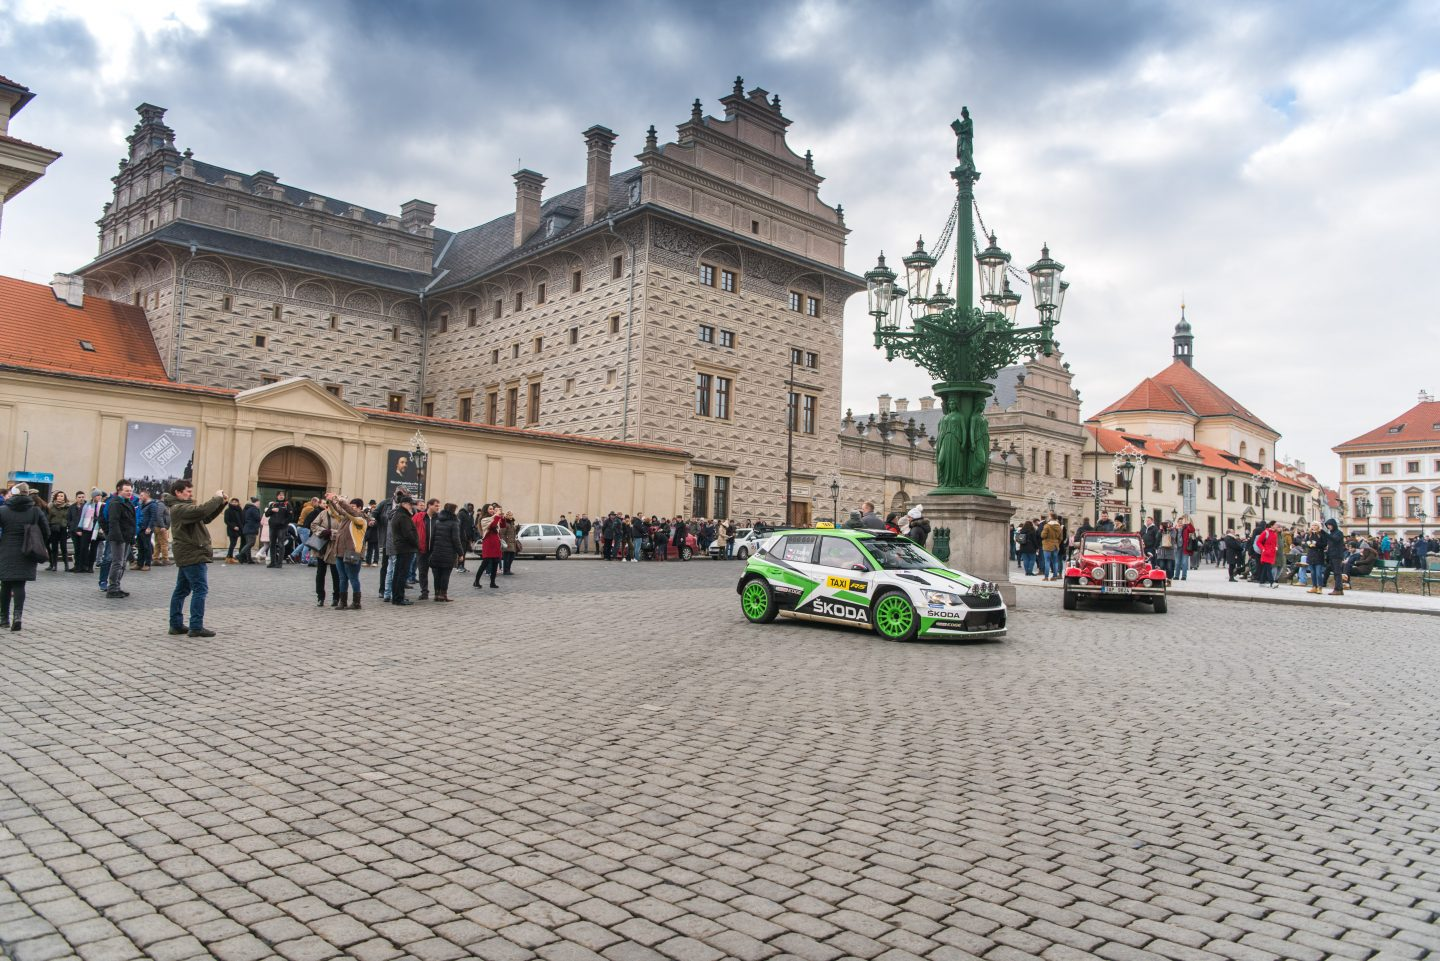 ŠKODA FABIA R5 raced passengers through Prague